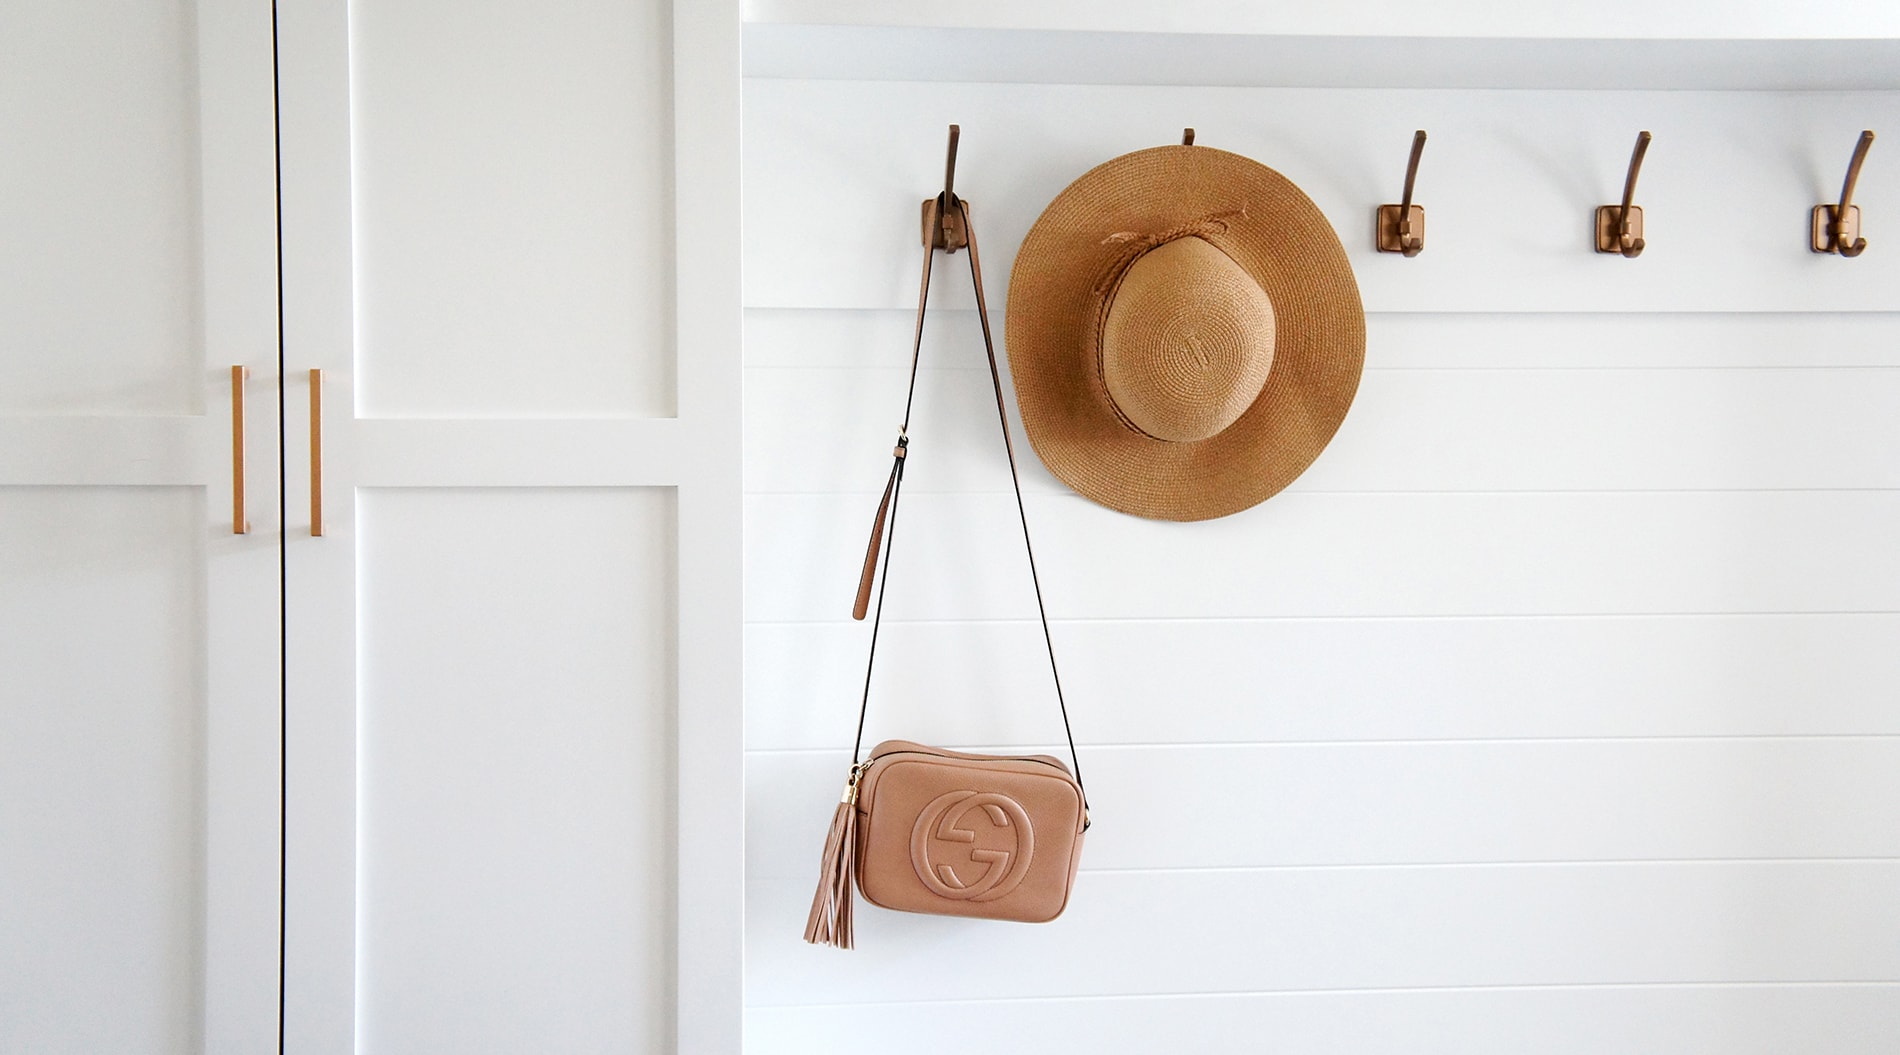 A series of hooks are mounted over shiplap, which expands the width and adds a timeless texture